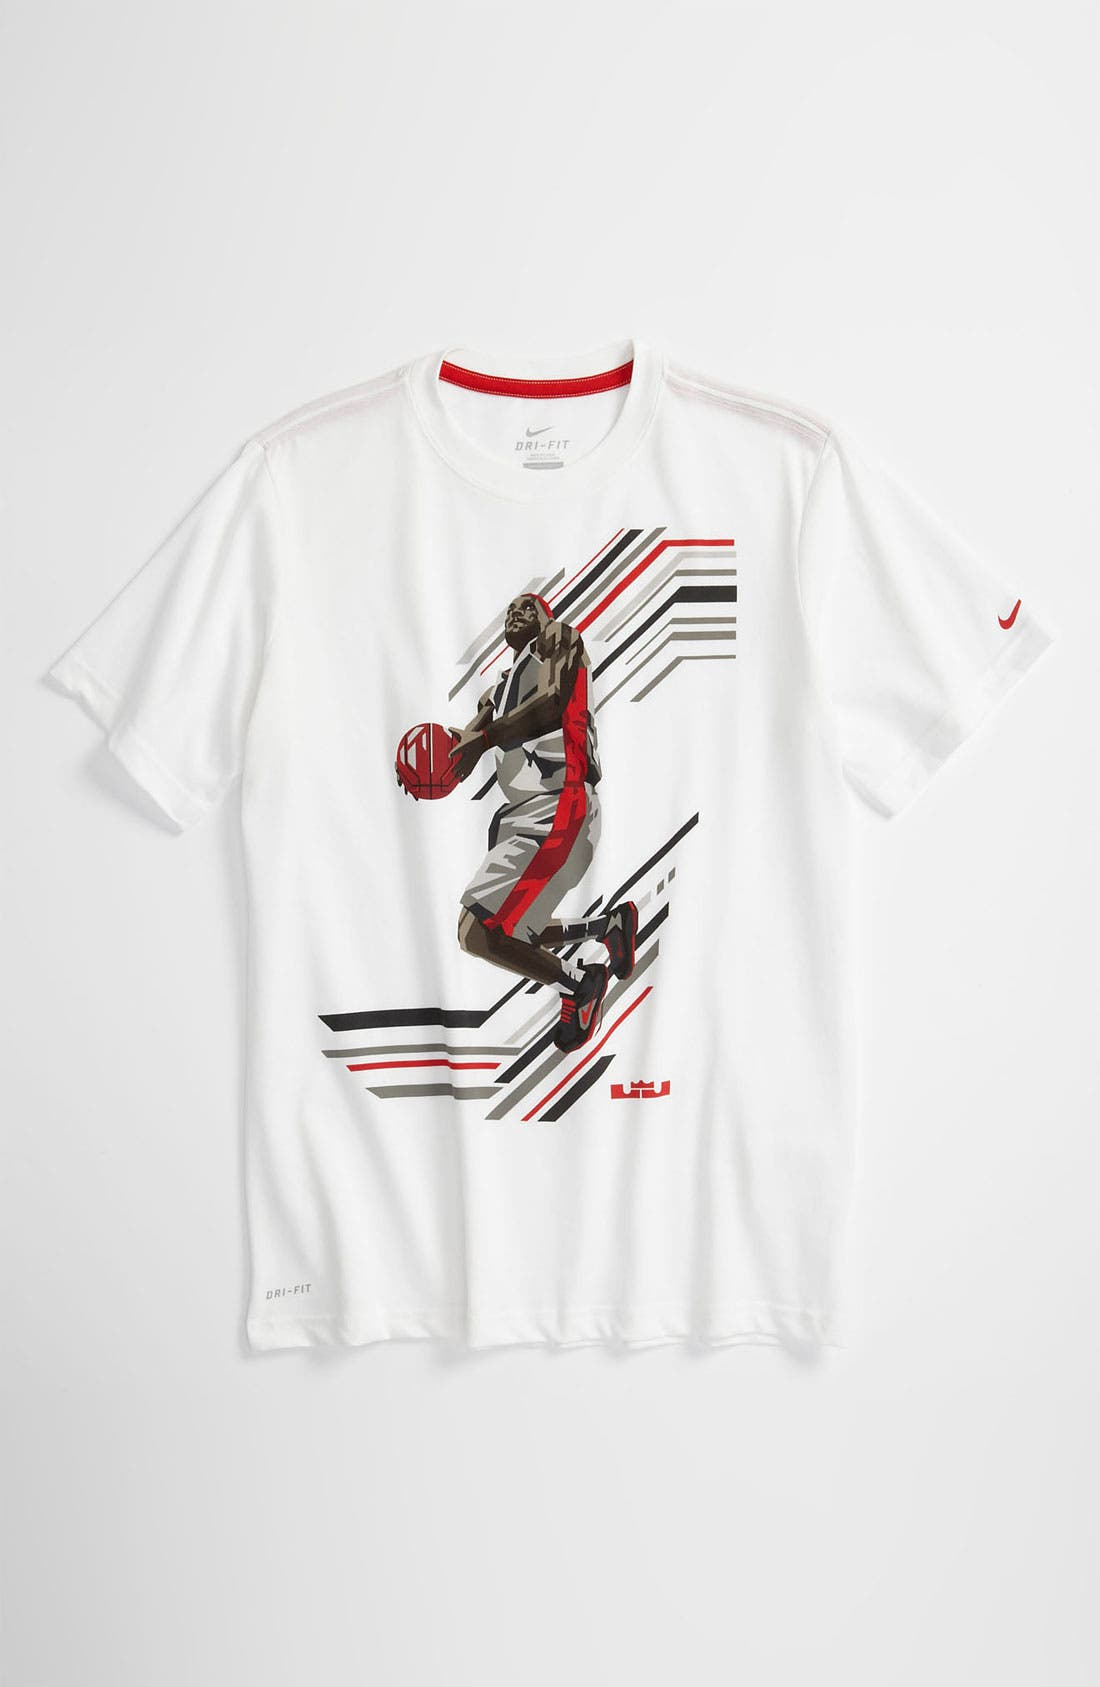 Alternate Image 1 Selected - Nike 'LeBron - Tech' Dri-FIT Cotton T-Shirt (Big Boys)